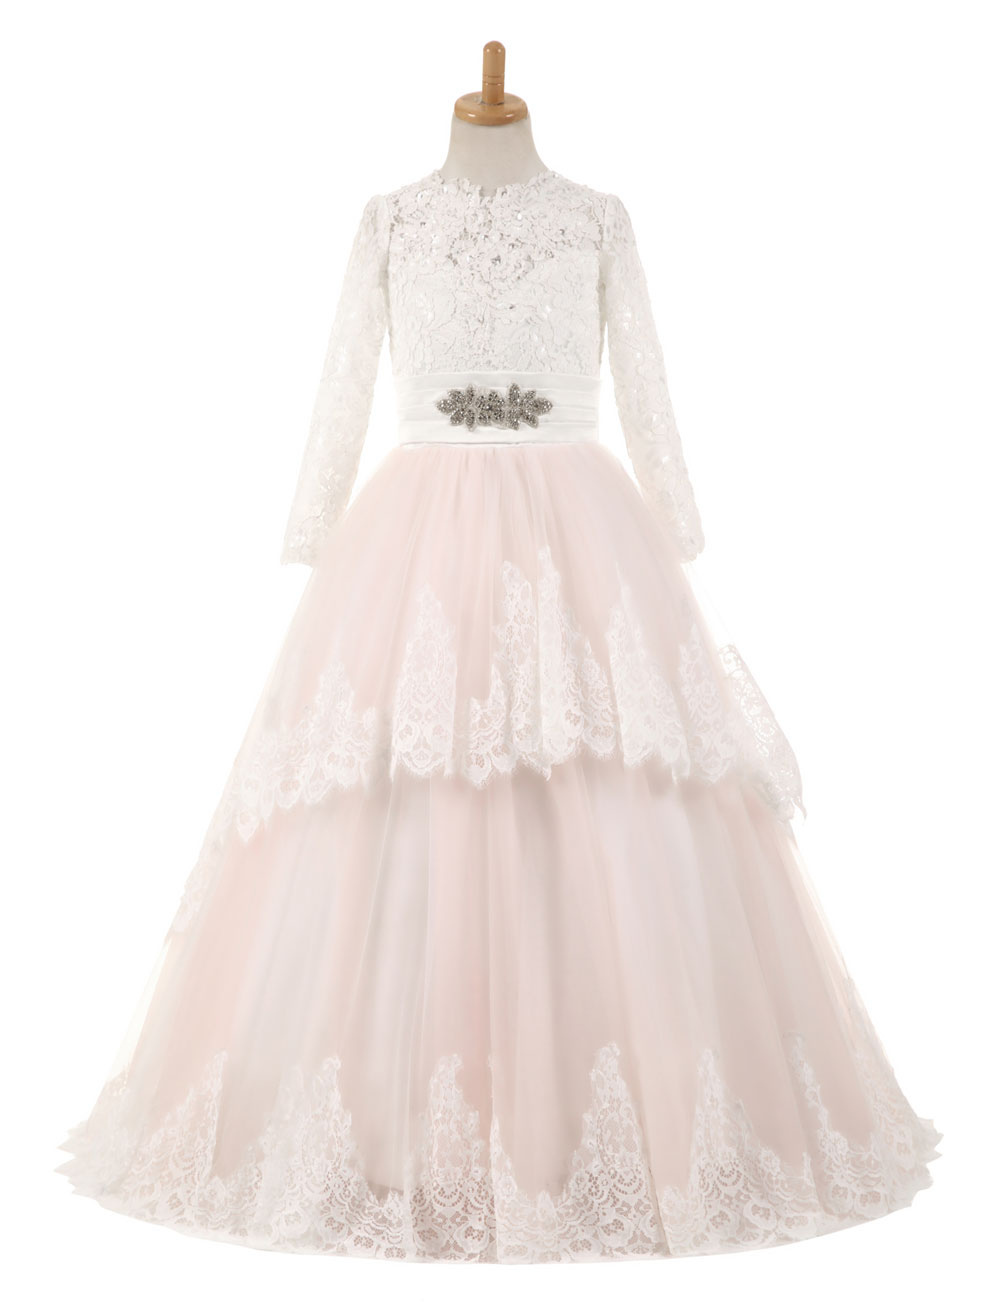 Flower Girl Dresses Lace Tulle Bows Satin Pageant Dresses Round Neck Long Sleeve Sash Blush Pink Floor Length Party Dress